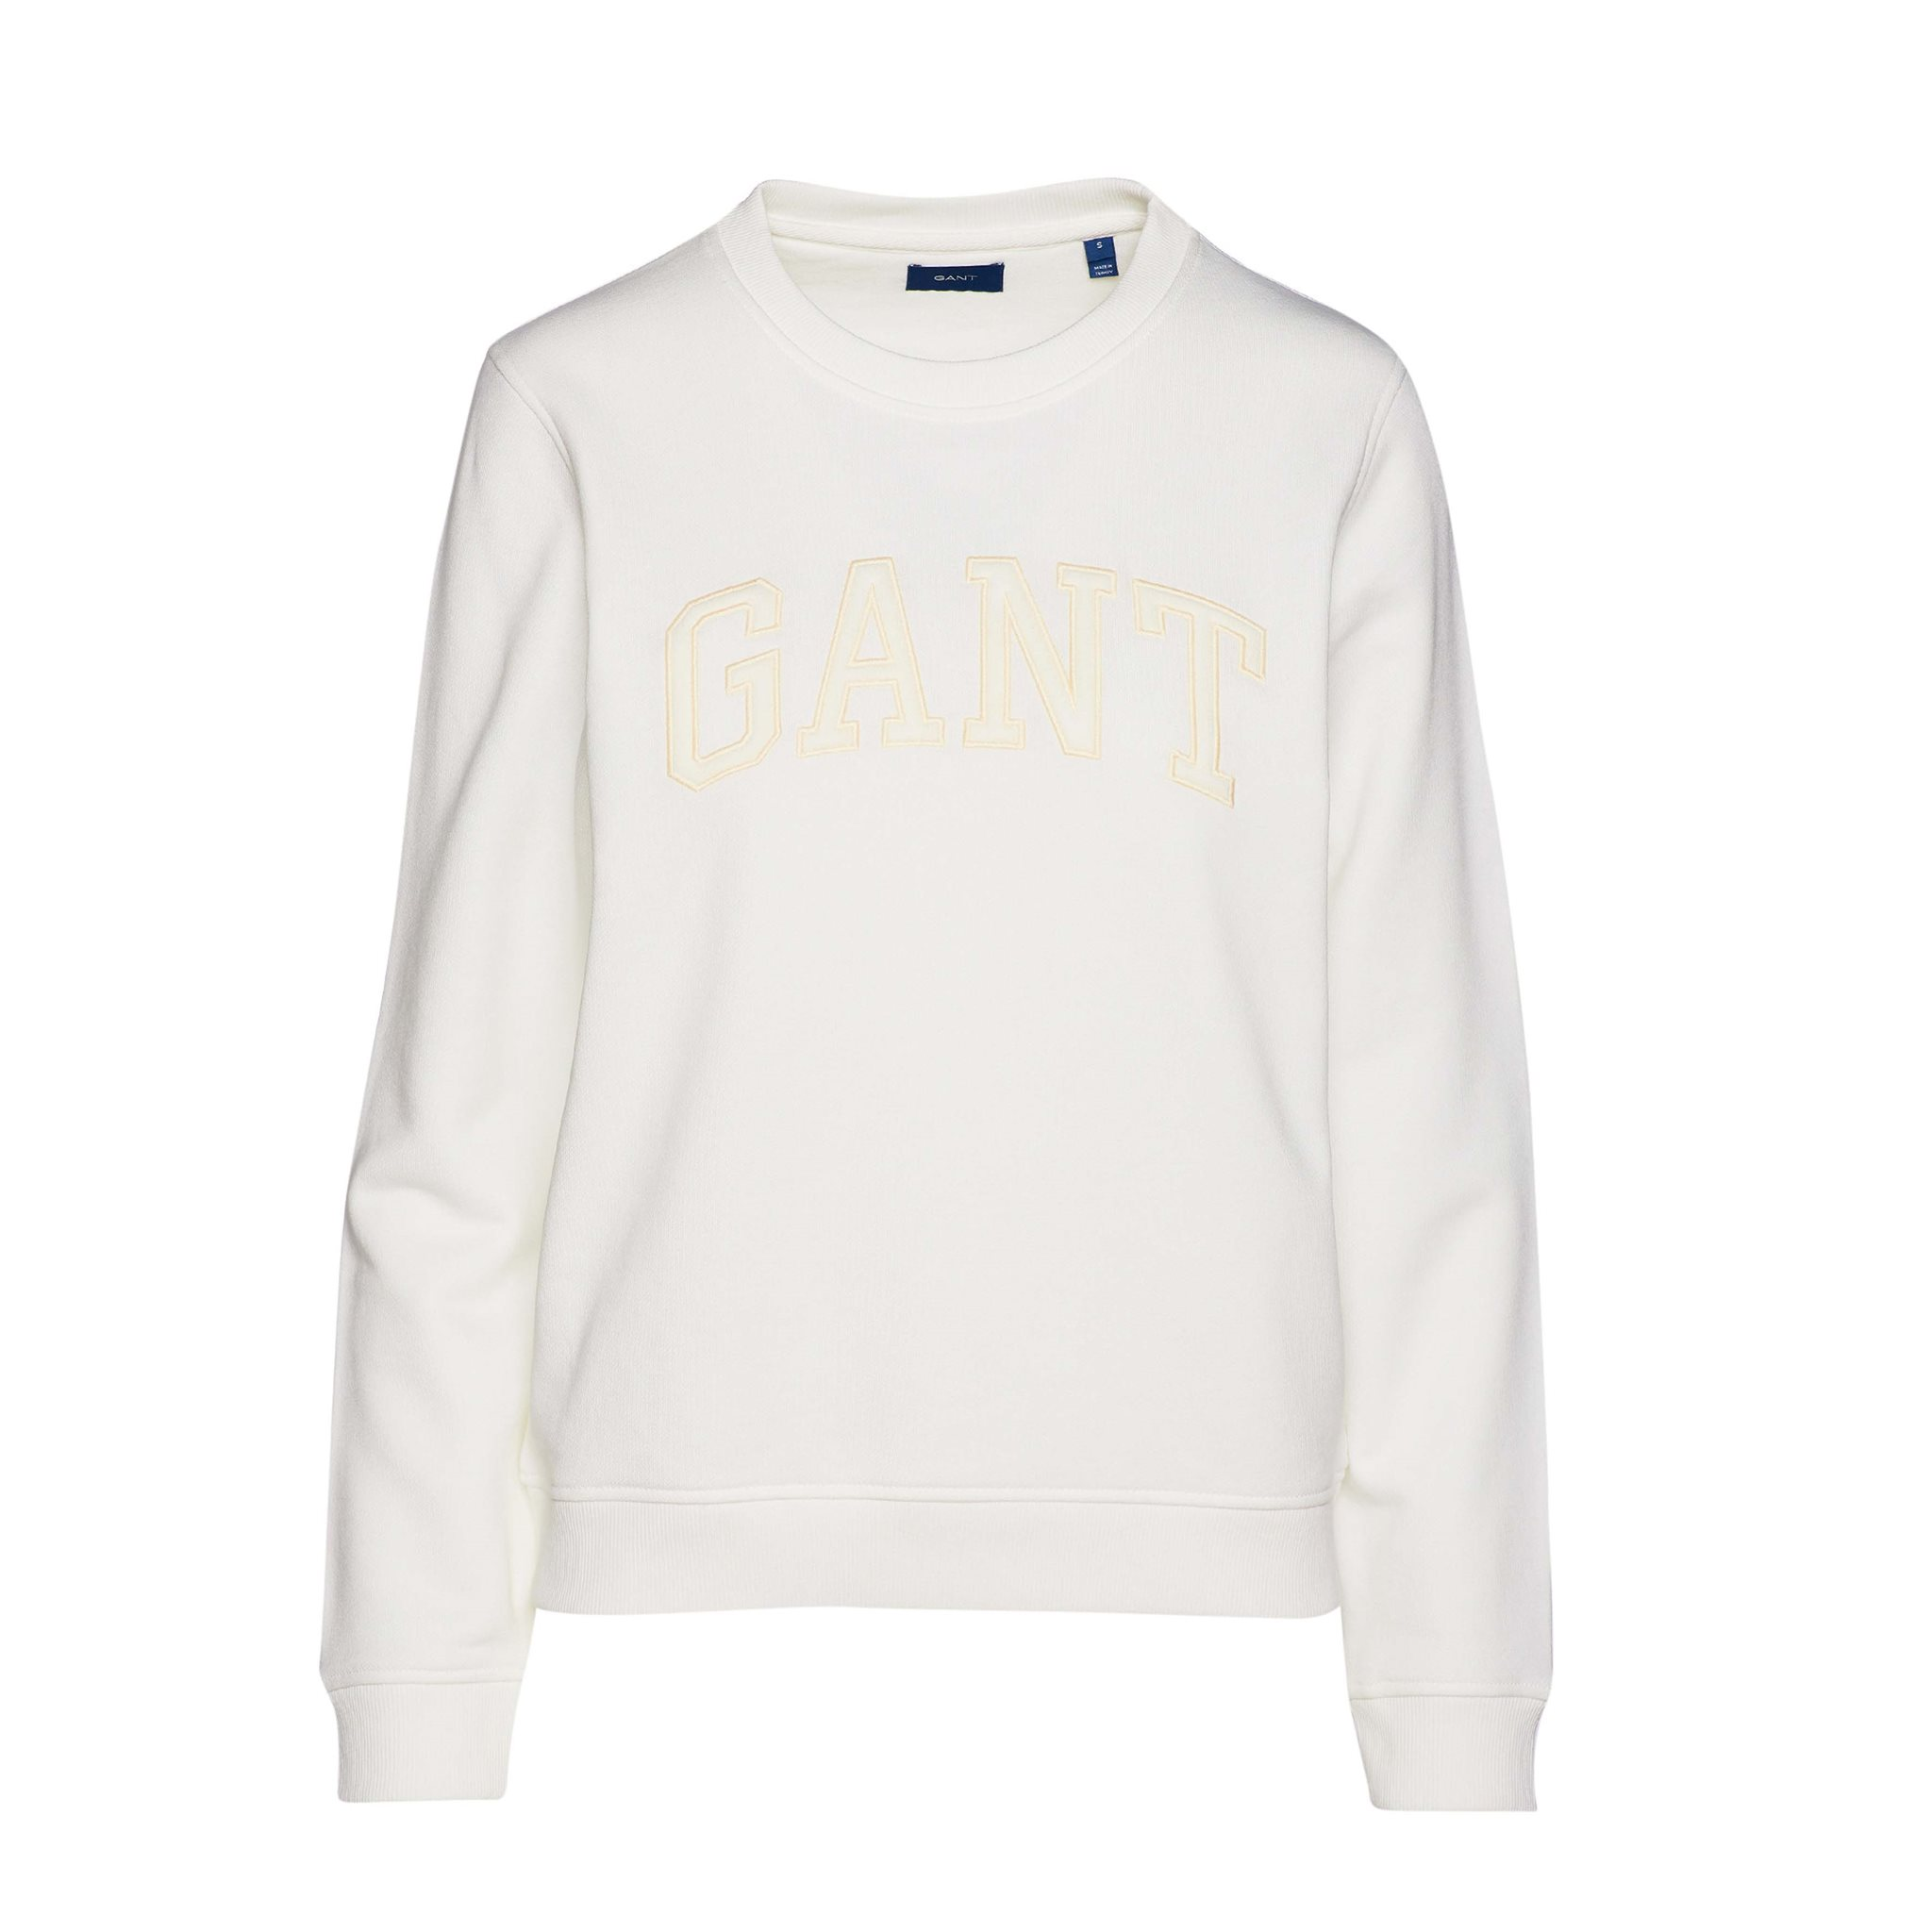 ARCH LOGO C-NECK SWEAT GANT WOMAN